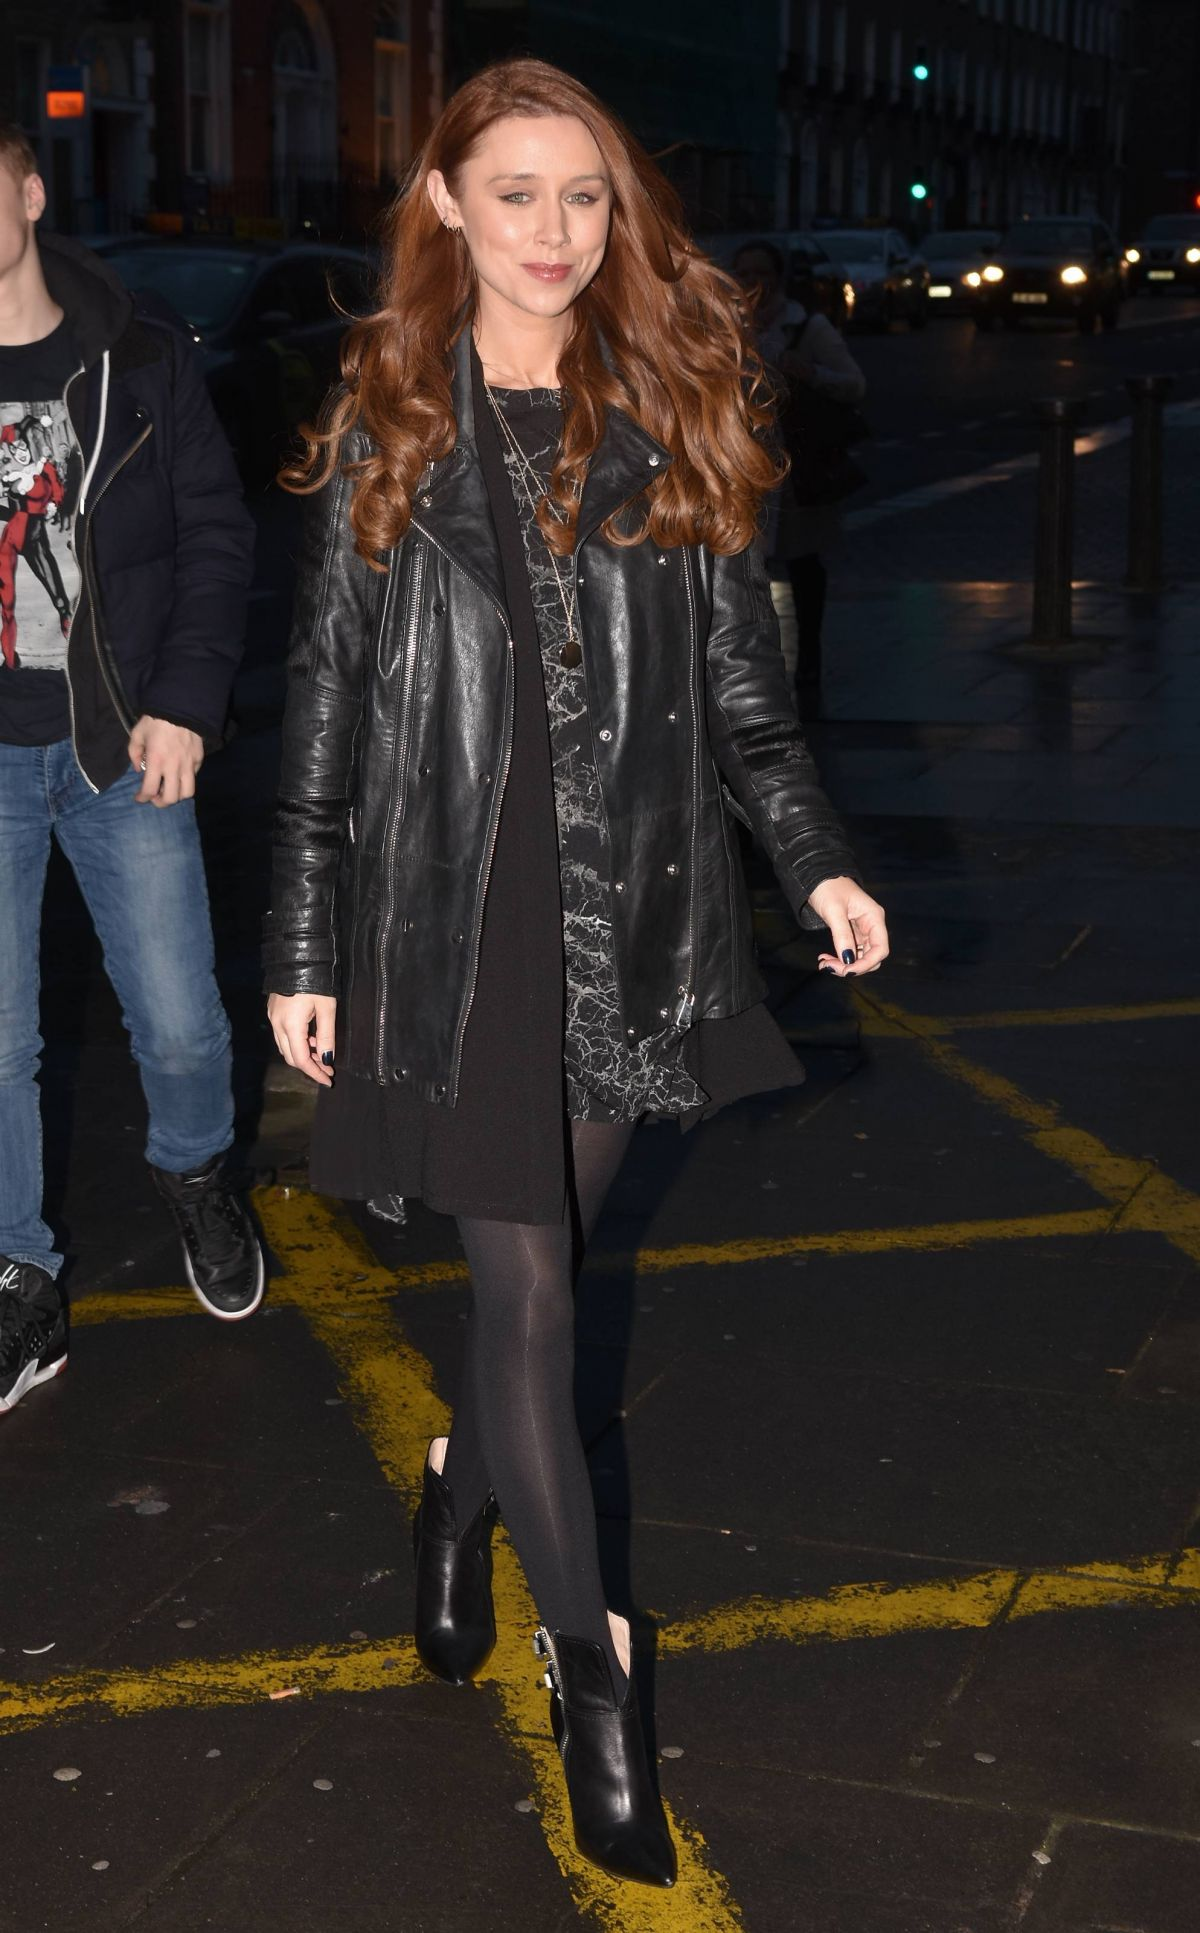 UNA HEALY Arrives at Sugar Club in Dublin 02/16/2017